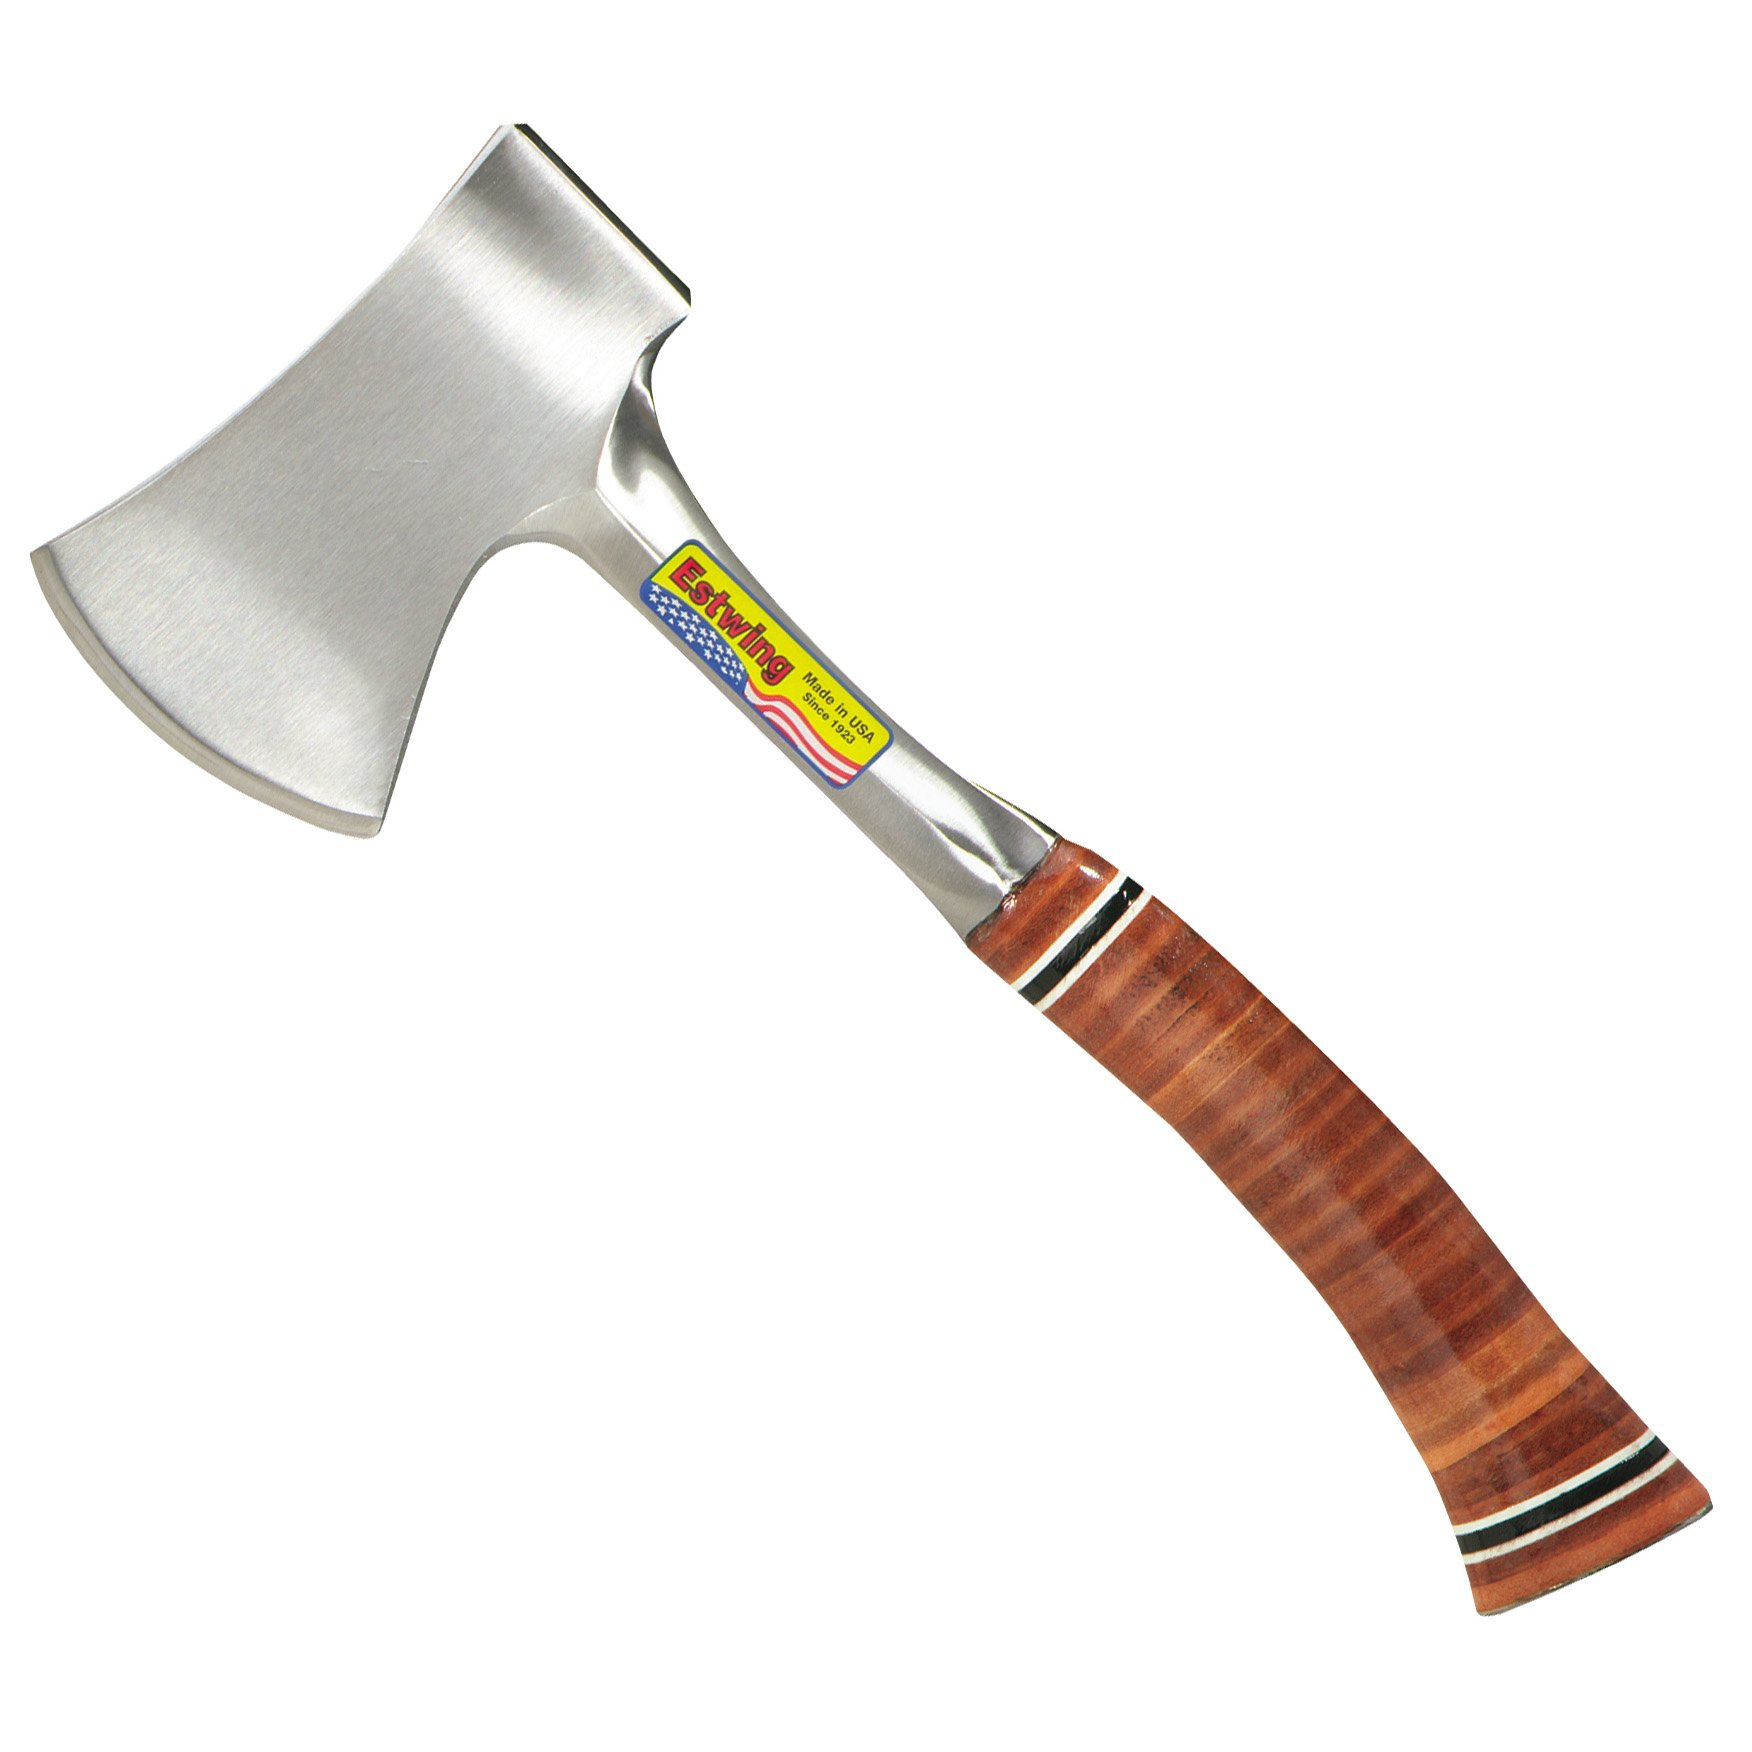 Estwing Sportsman's Axe - 14'' Camping Hatchet with Forged Steel Construction & Genuine Leather Grip - E24A by Estwing (Image #1)